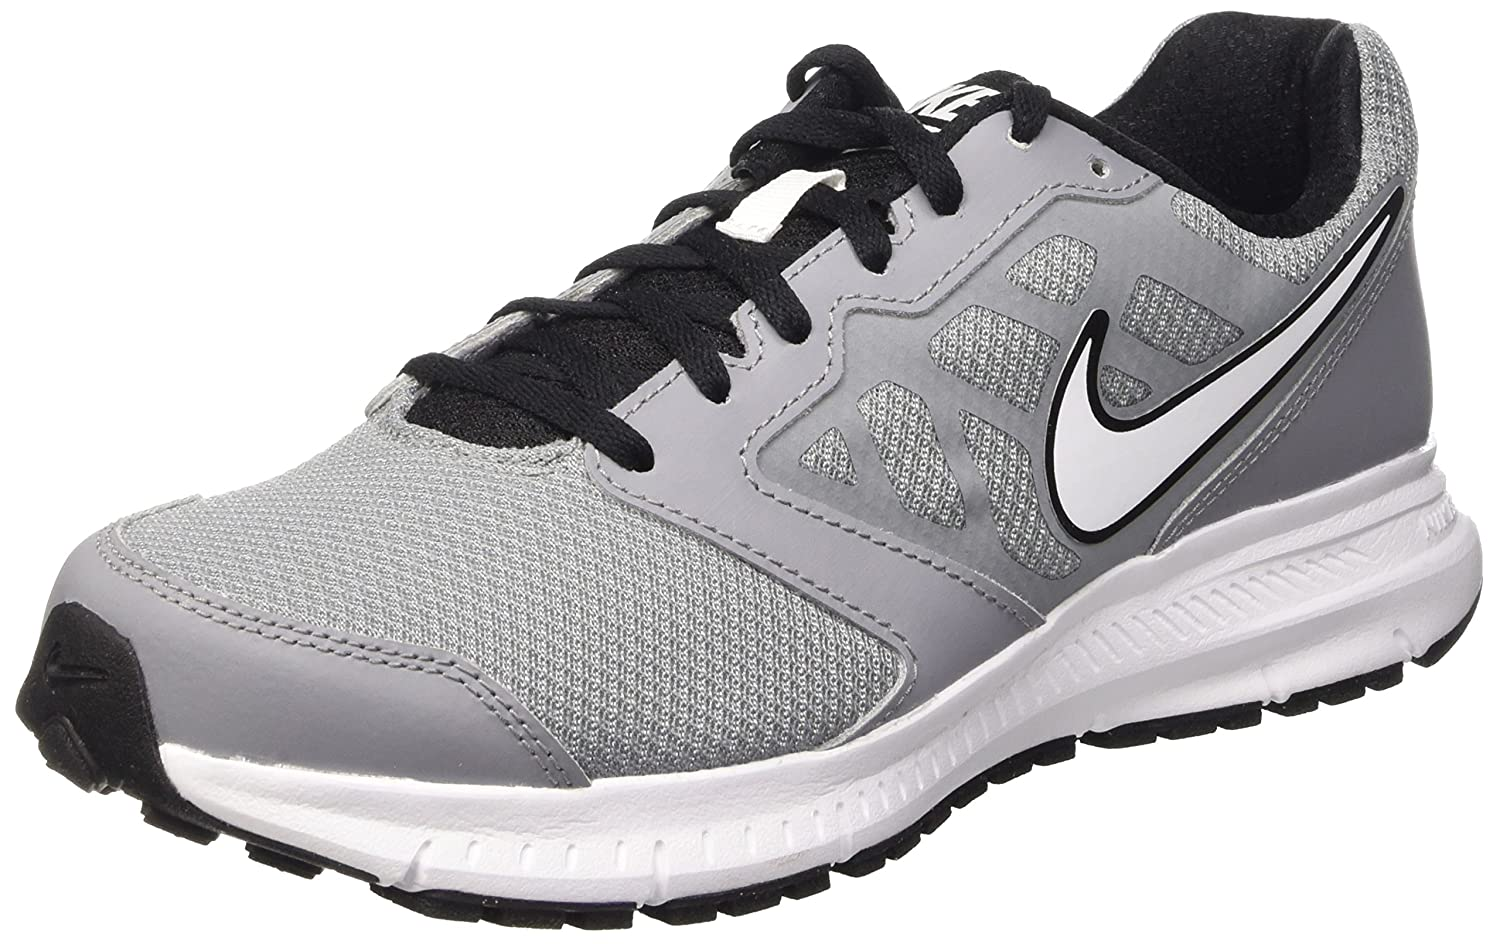 Nike Downshifter 6 Running Shoe B010OBMCOG 7.5 D(M) US|Stealth/Black/White